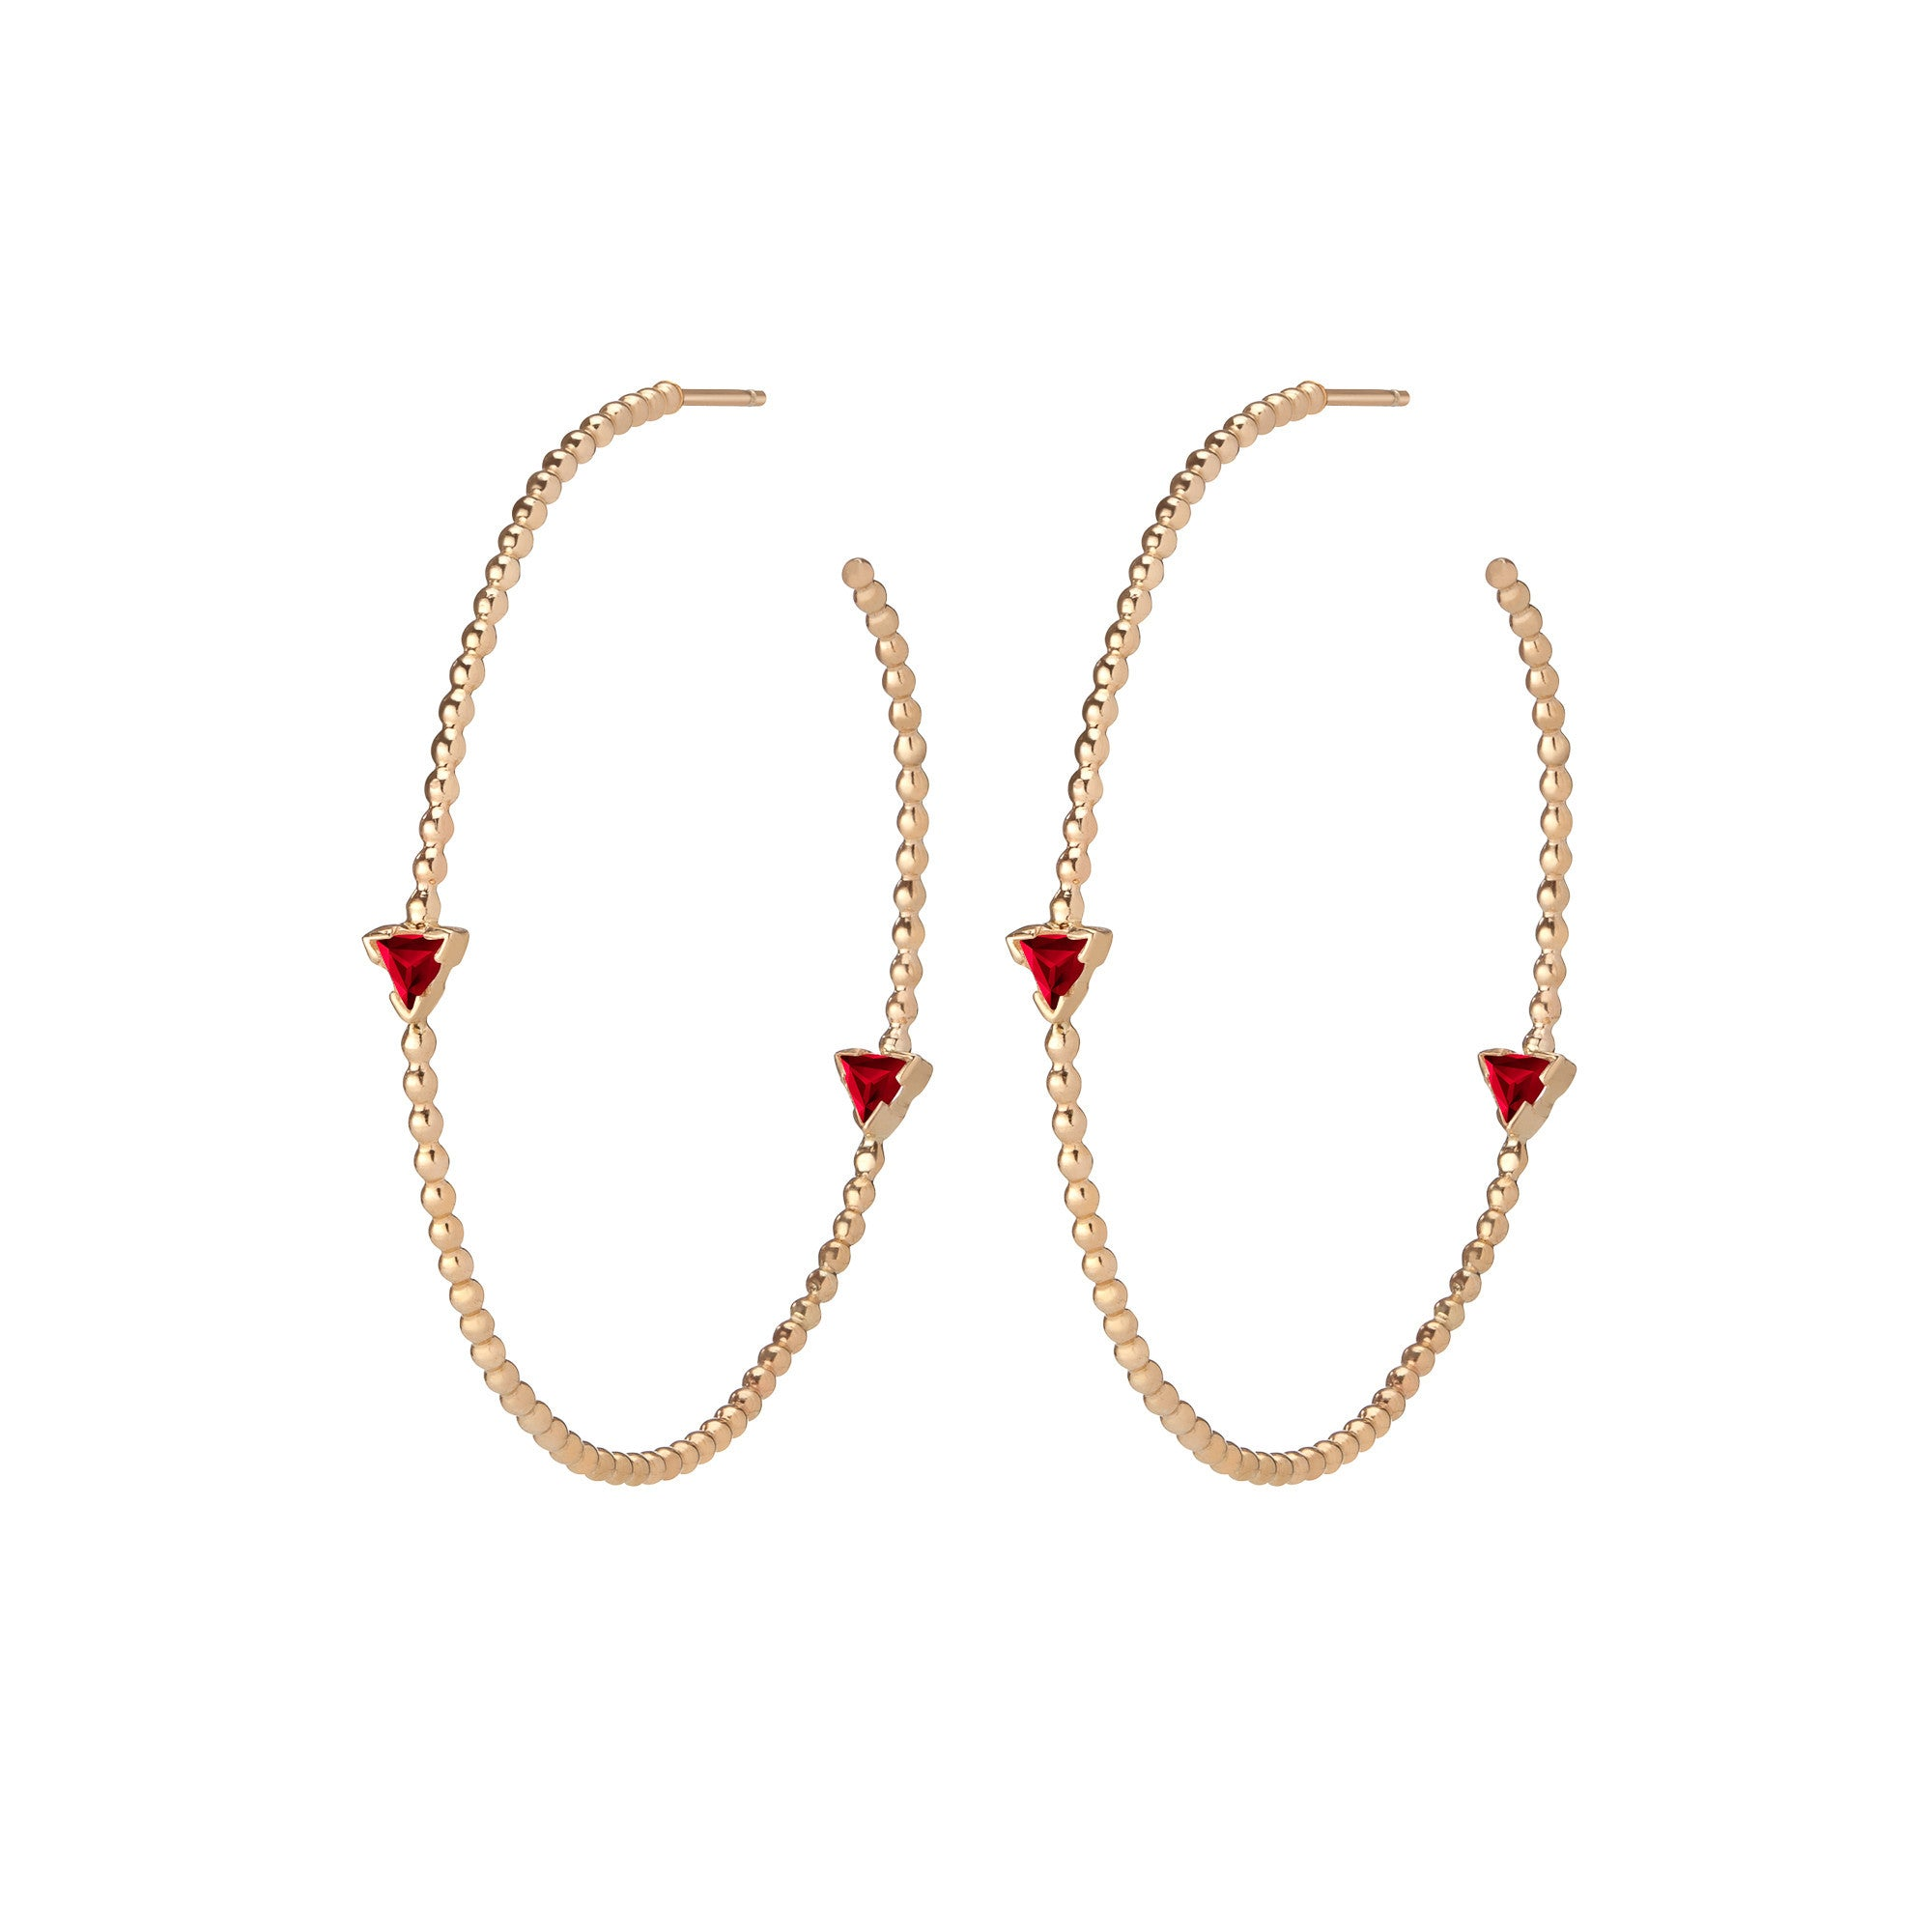 14K Gold Birthstone Hoop Earrings